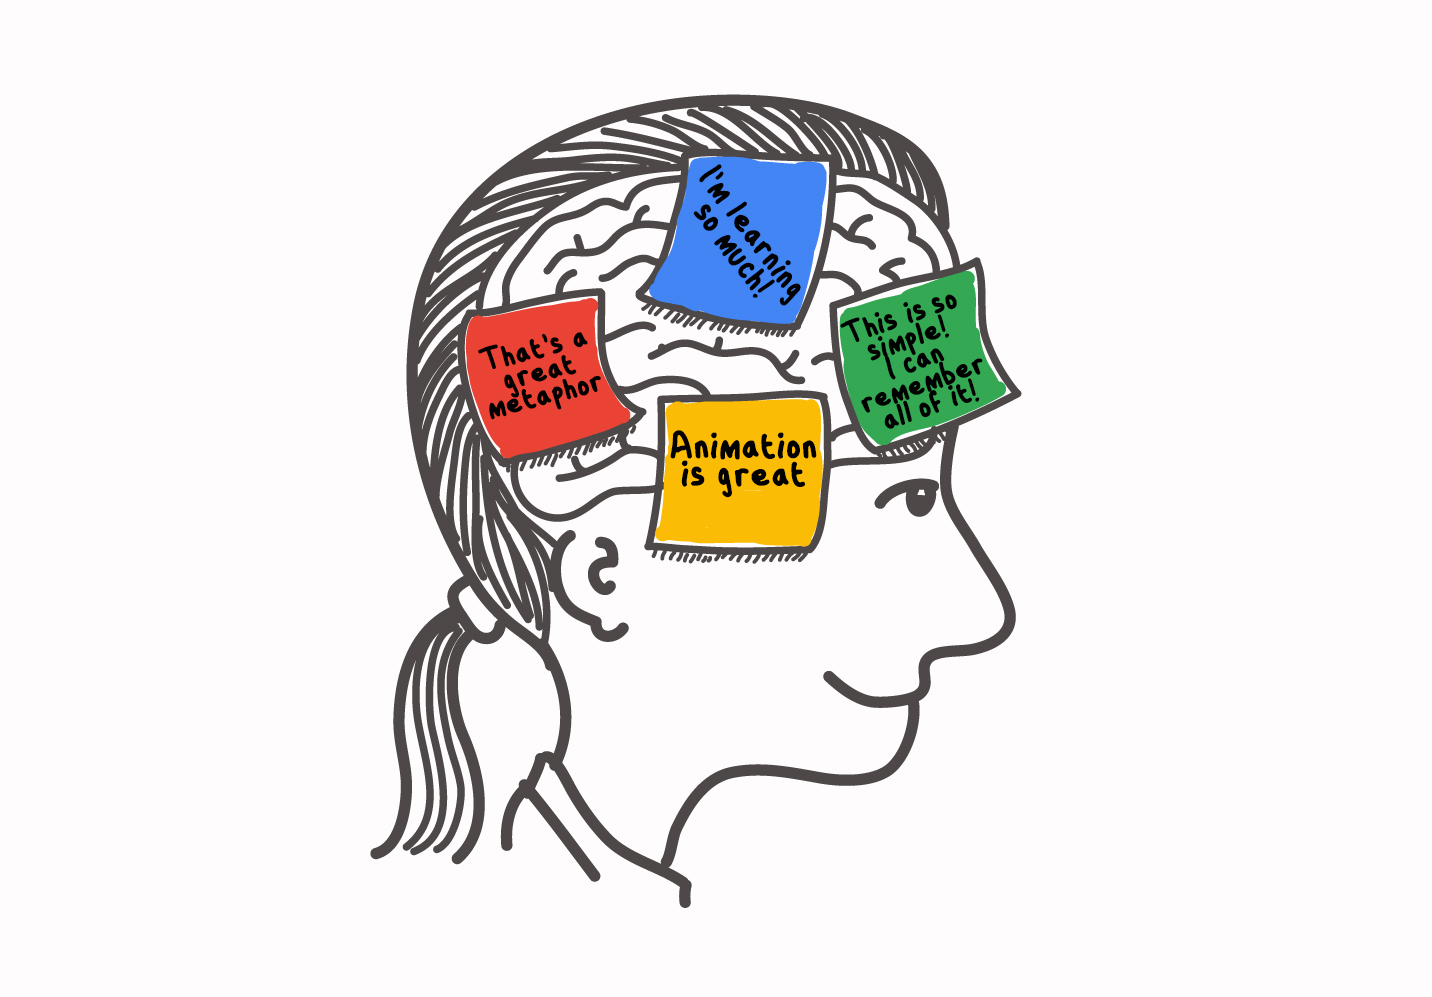 Illustration of a brain with post it notes on learning